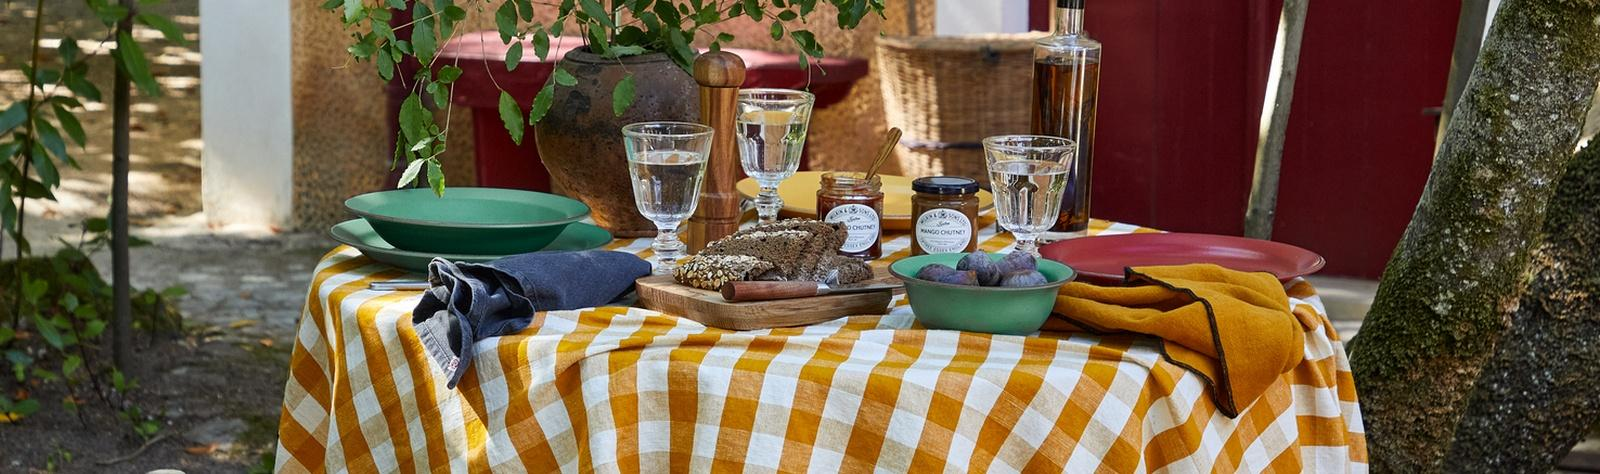 Positano - Amora collection with 8 products